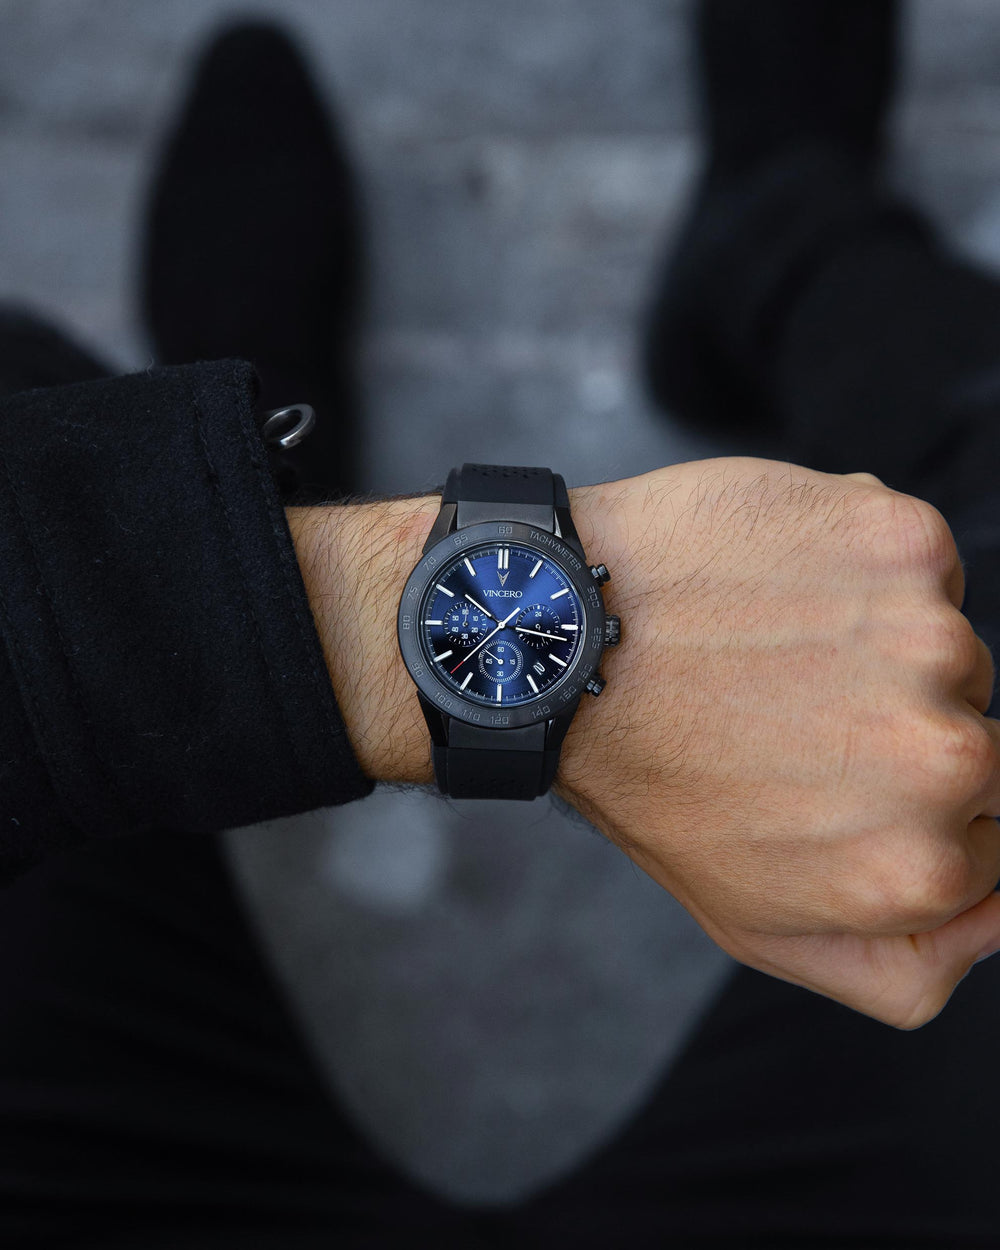 Rogue Black Silicone Strap Blue Watch Face Black Case Clasp White Accents